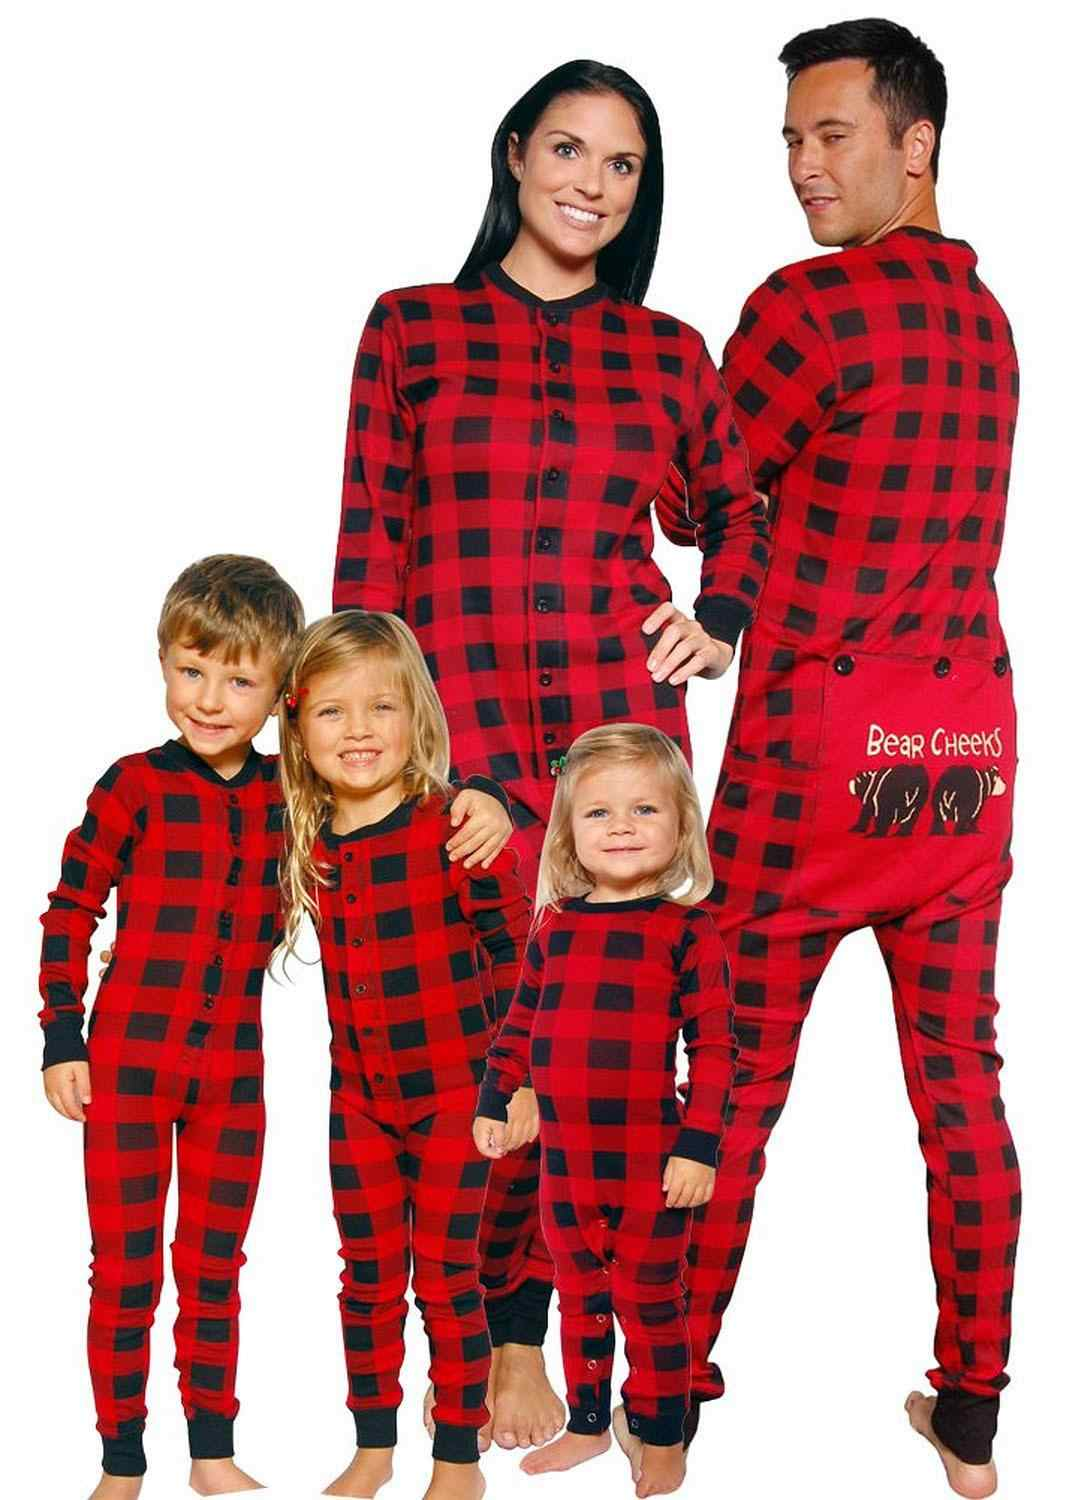 Family Matching Christmas Kids Adult man women boy girl Pajamas Pjs Set Xmas Hooded Jumpsuit Fashion Casual Nightwear Gifts